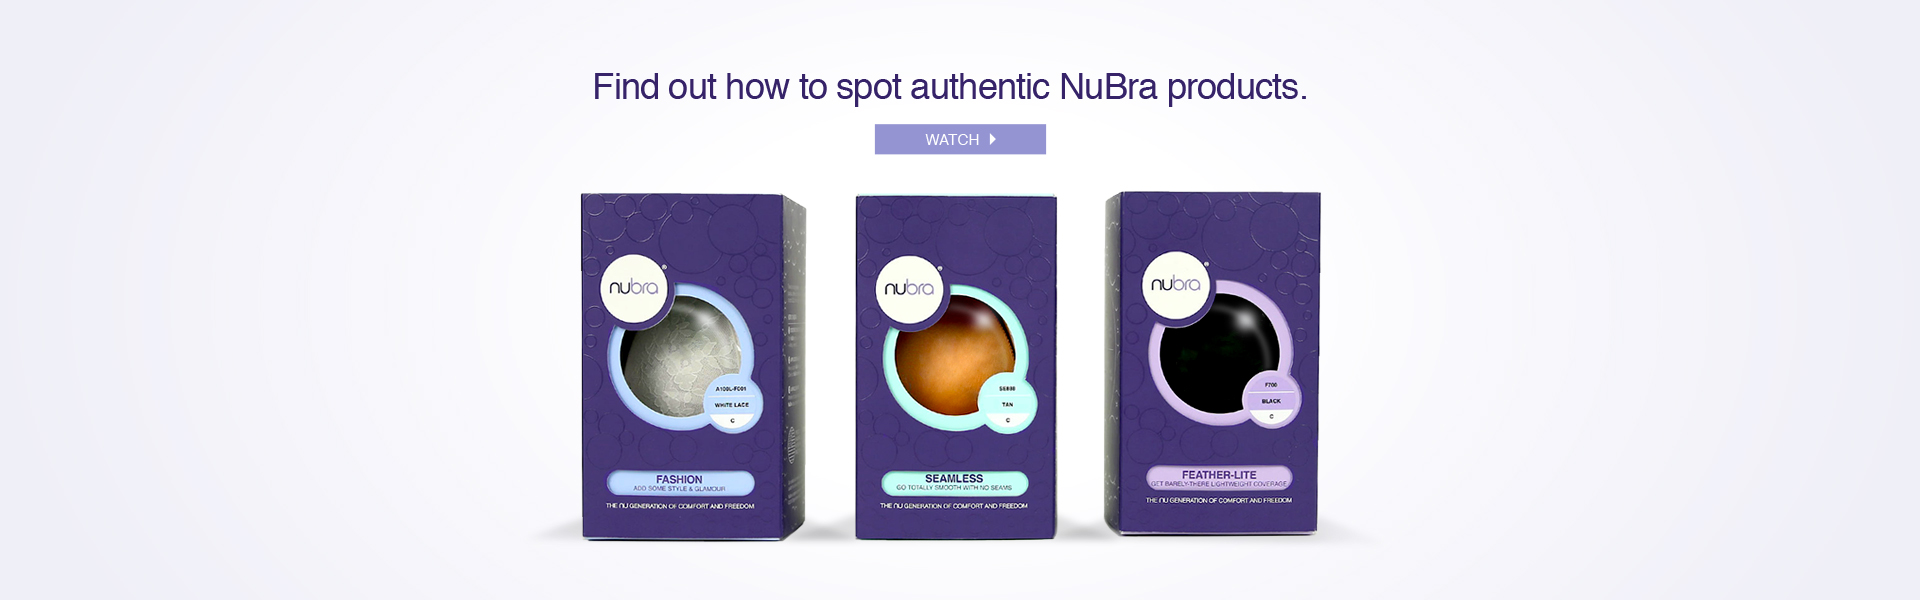 How to Identify an Authentic NuBra